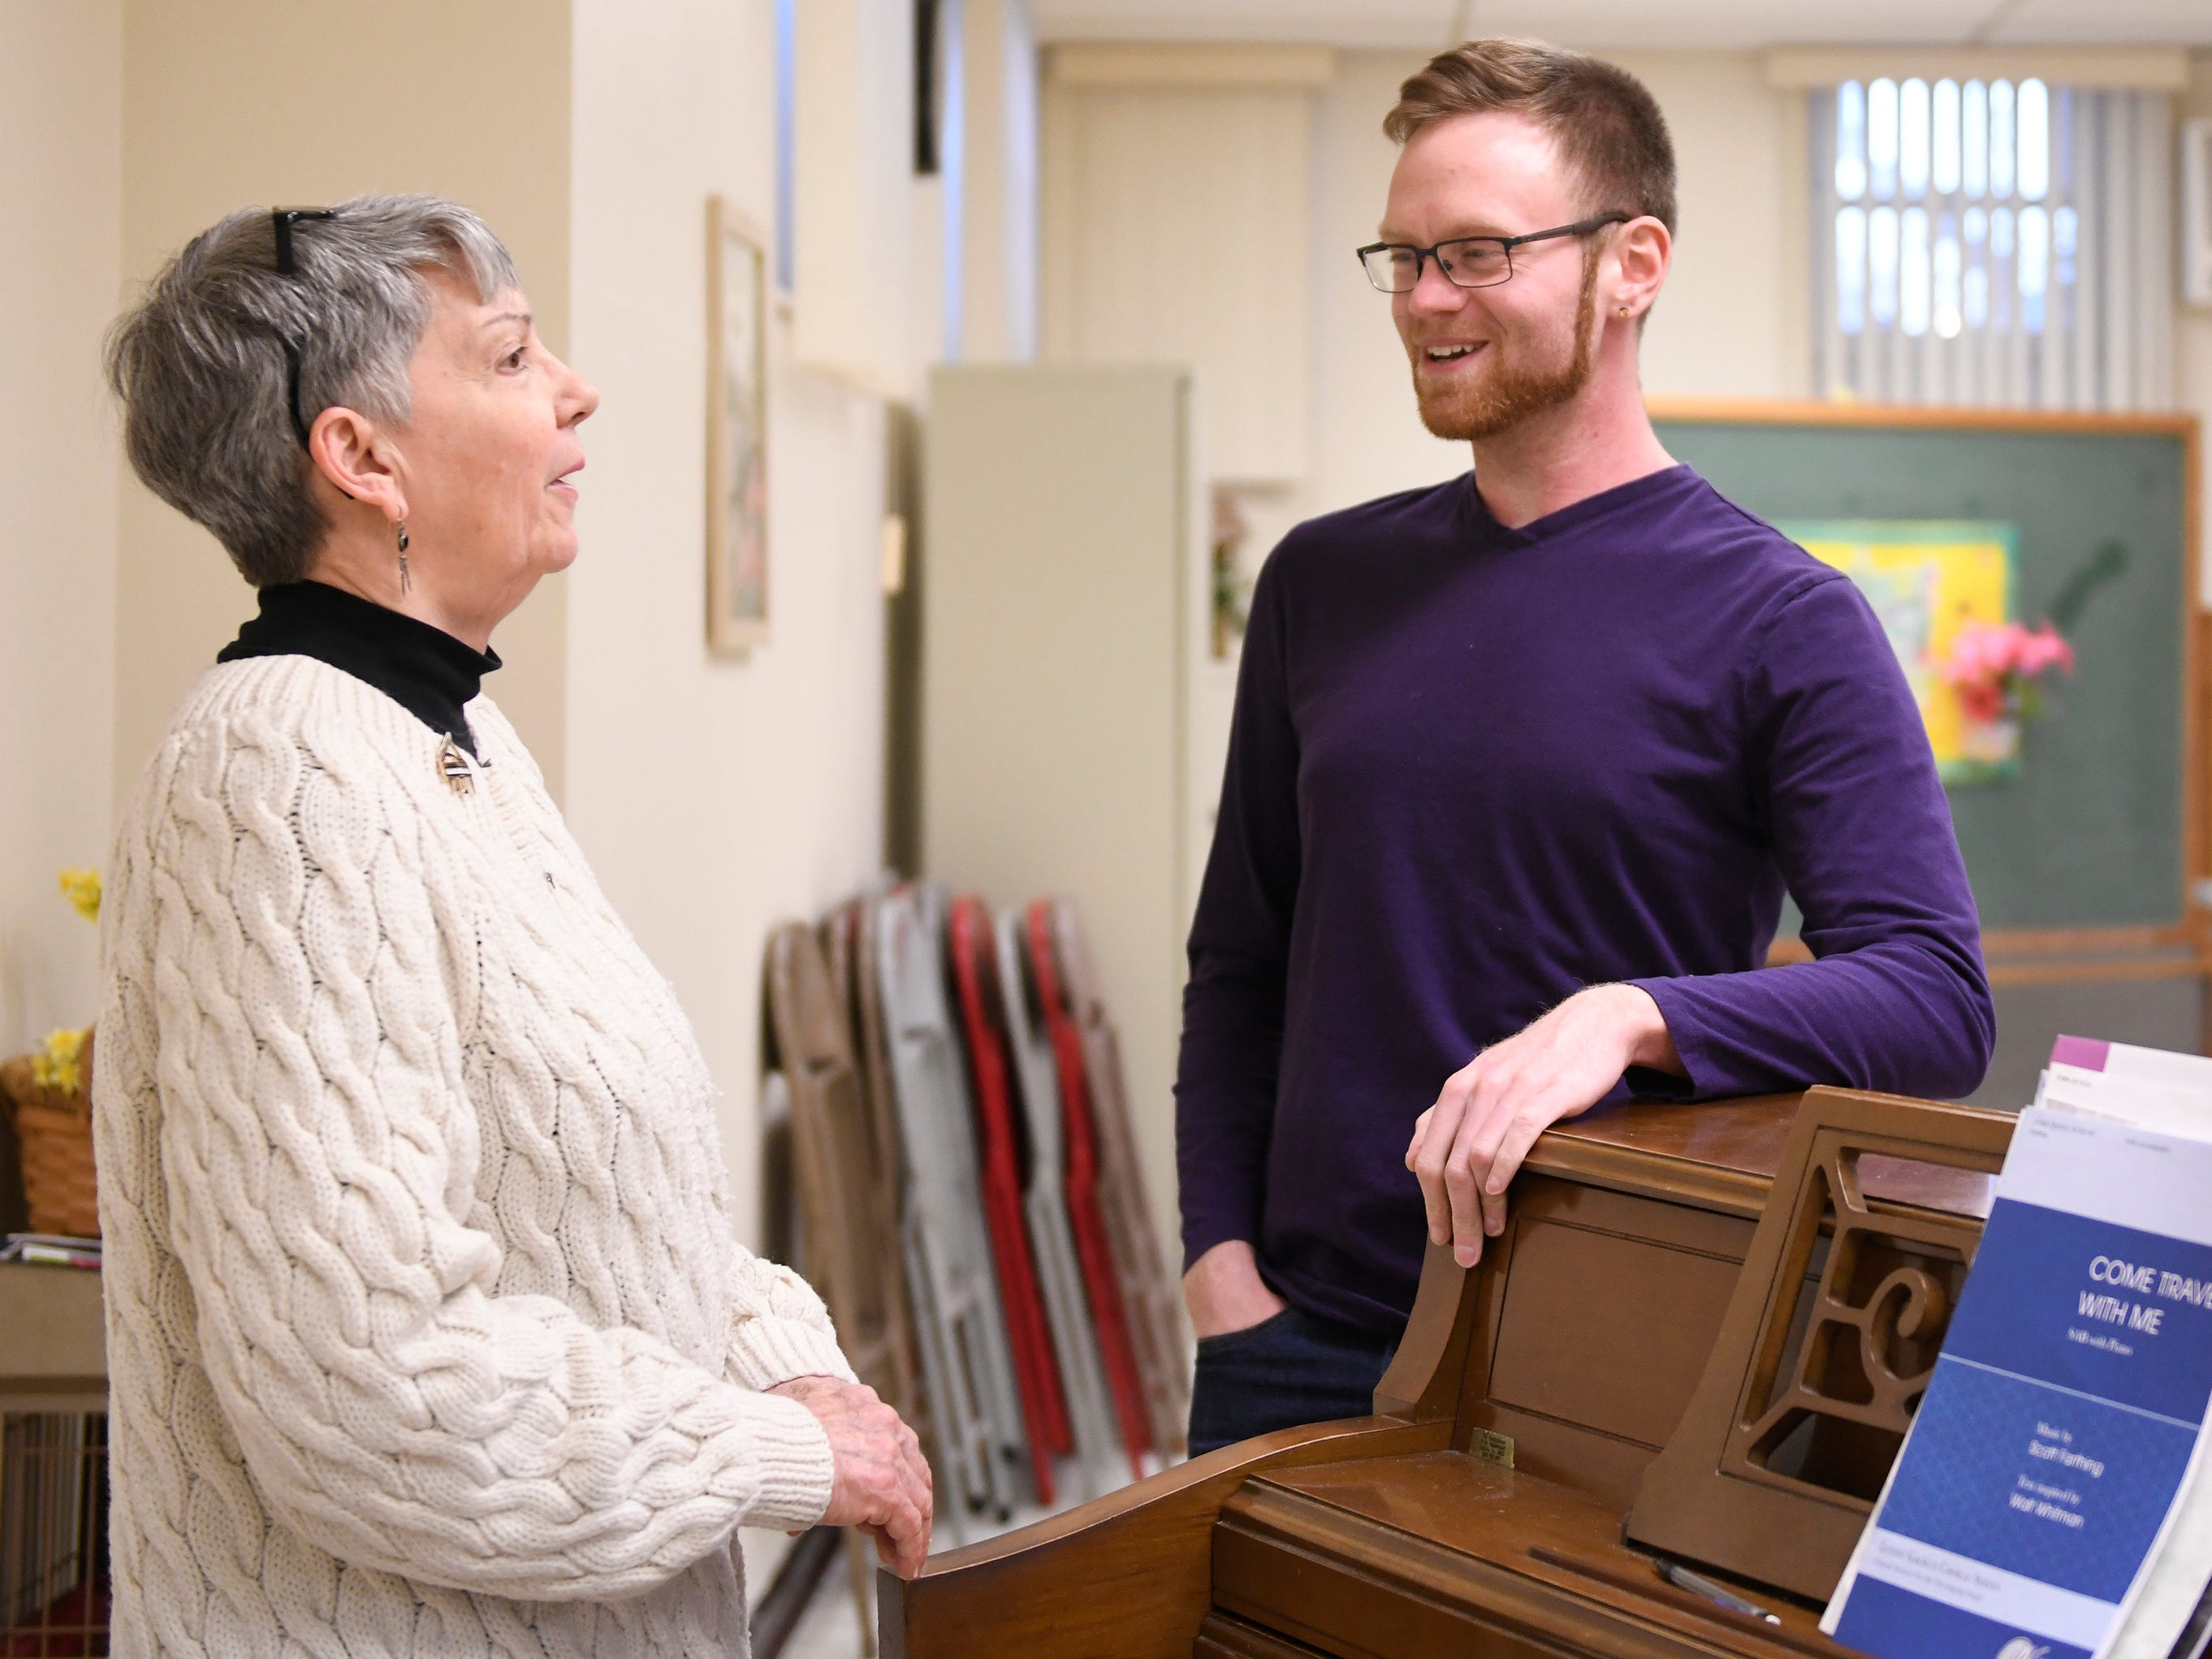 Gae Finch and Kyle Sheppard talk before Monday's Singing Ambassadors rehearsal at the Vineland Senior Center. After 62 years of entertaining, the group is preparing for their final concert.